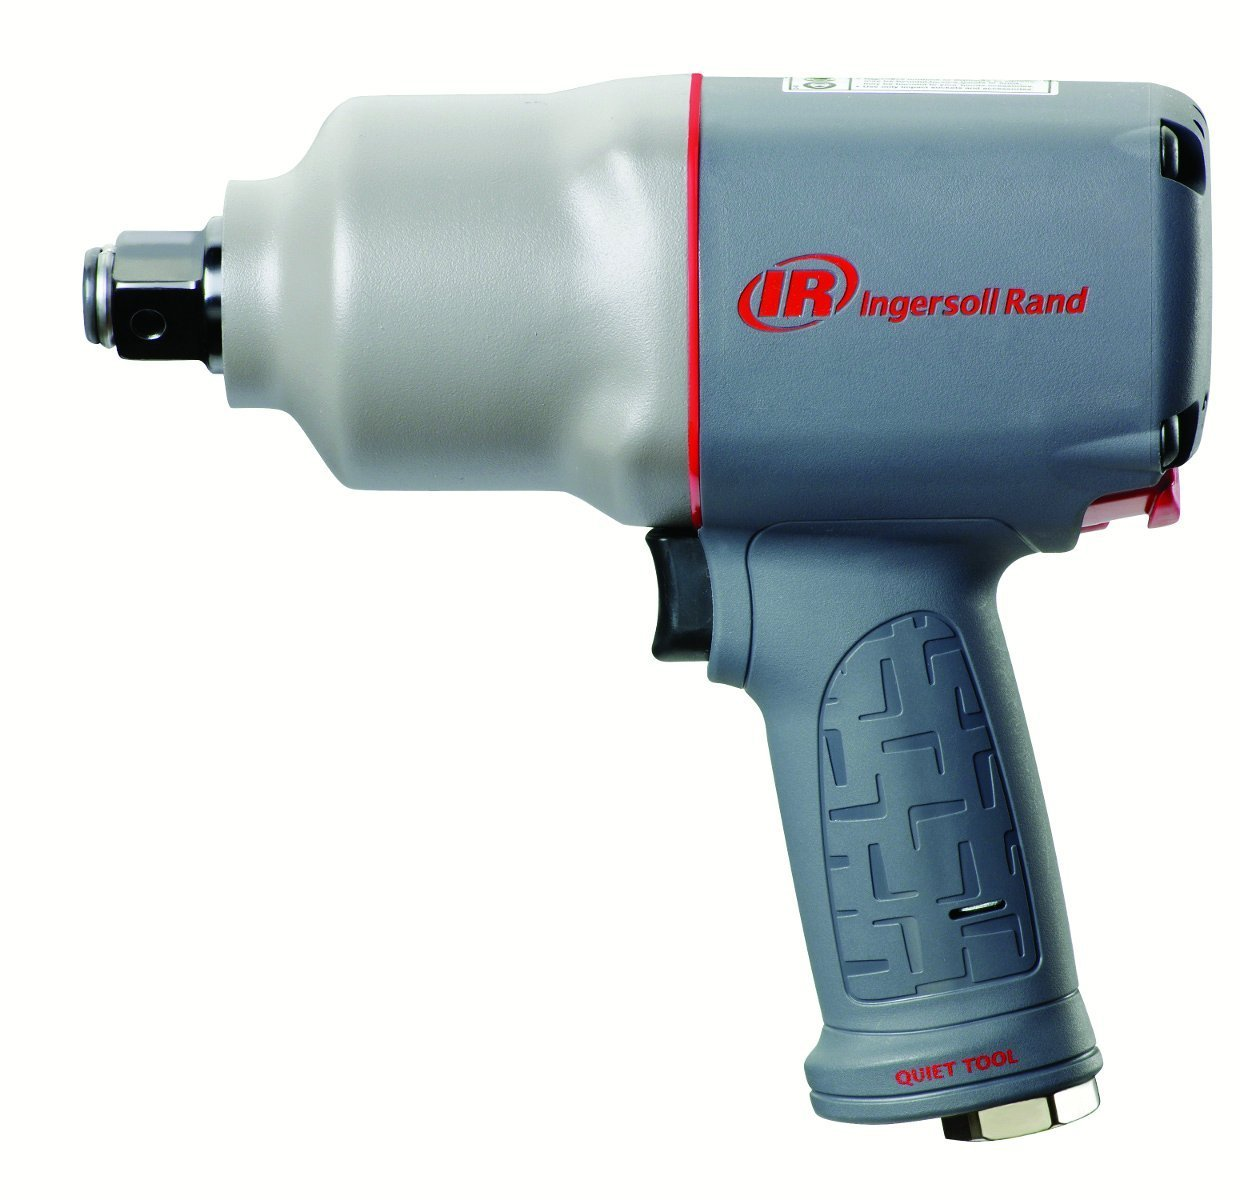 Ingersoll Rand 2145QiMax 3 4-Inch Composite